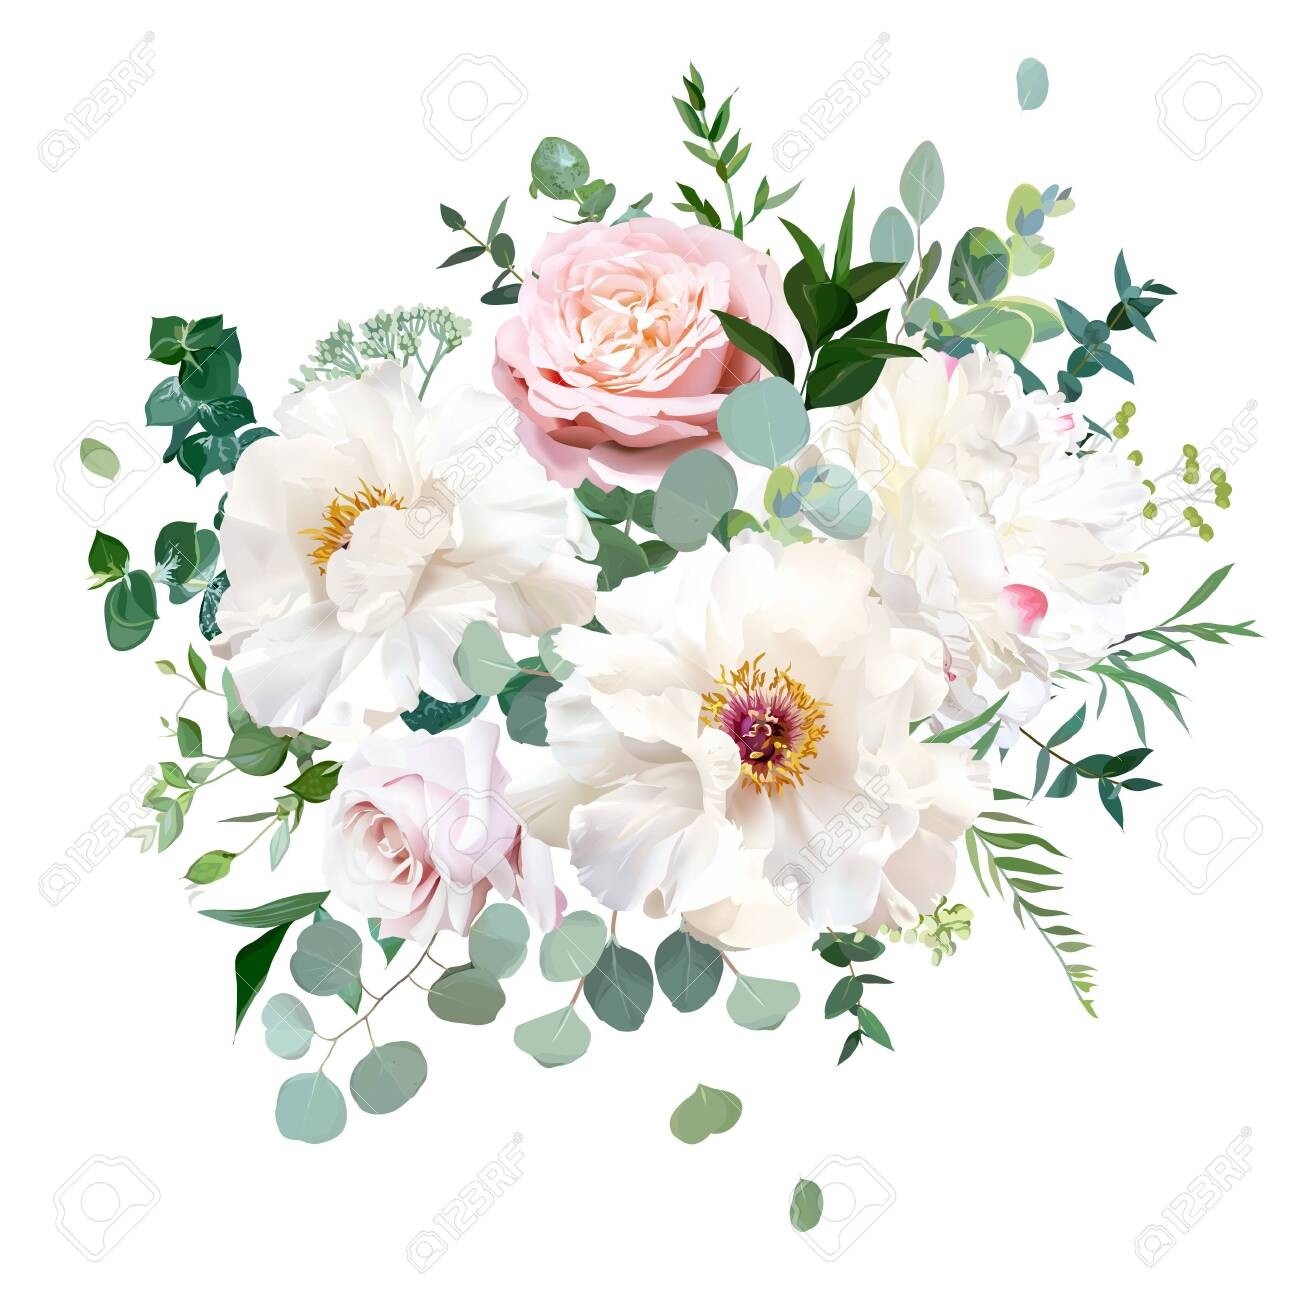 Dusty Pink Blush Rose White And Creamy Woody Peony Flowers Vector Royalty Free Cliparts Vectors And Stock Illustration Image 136411657